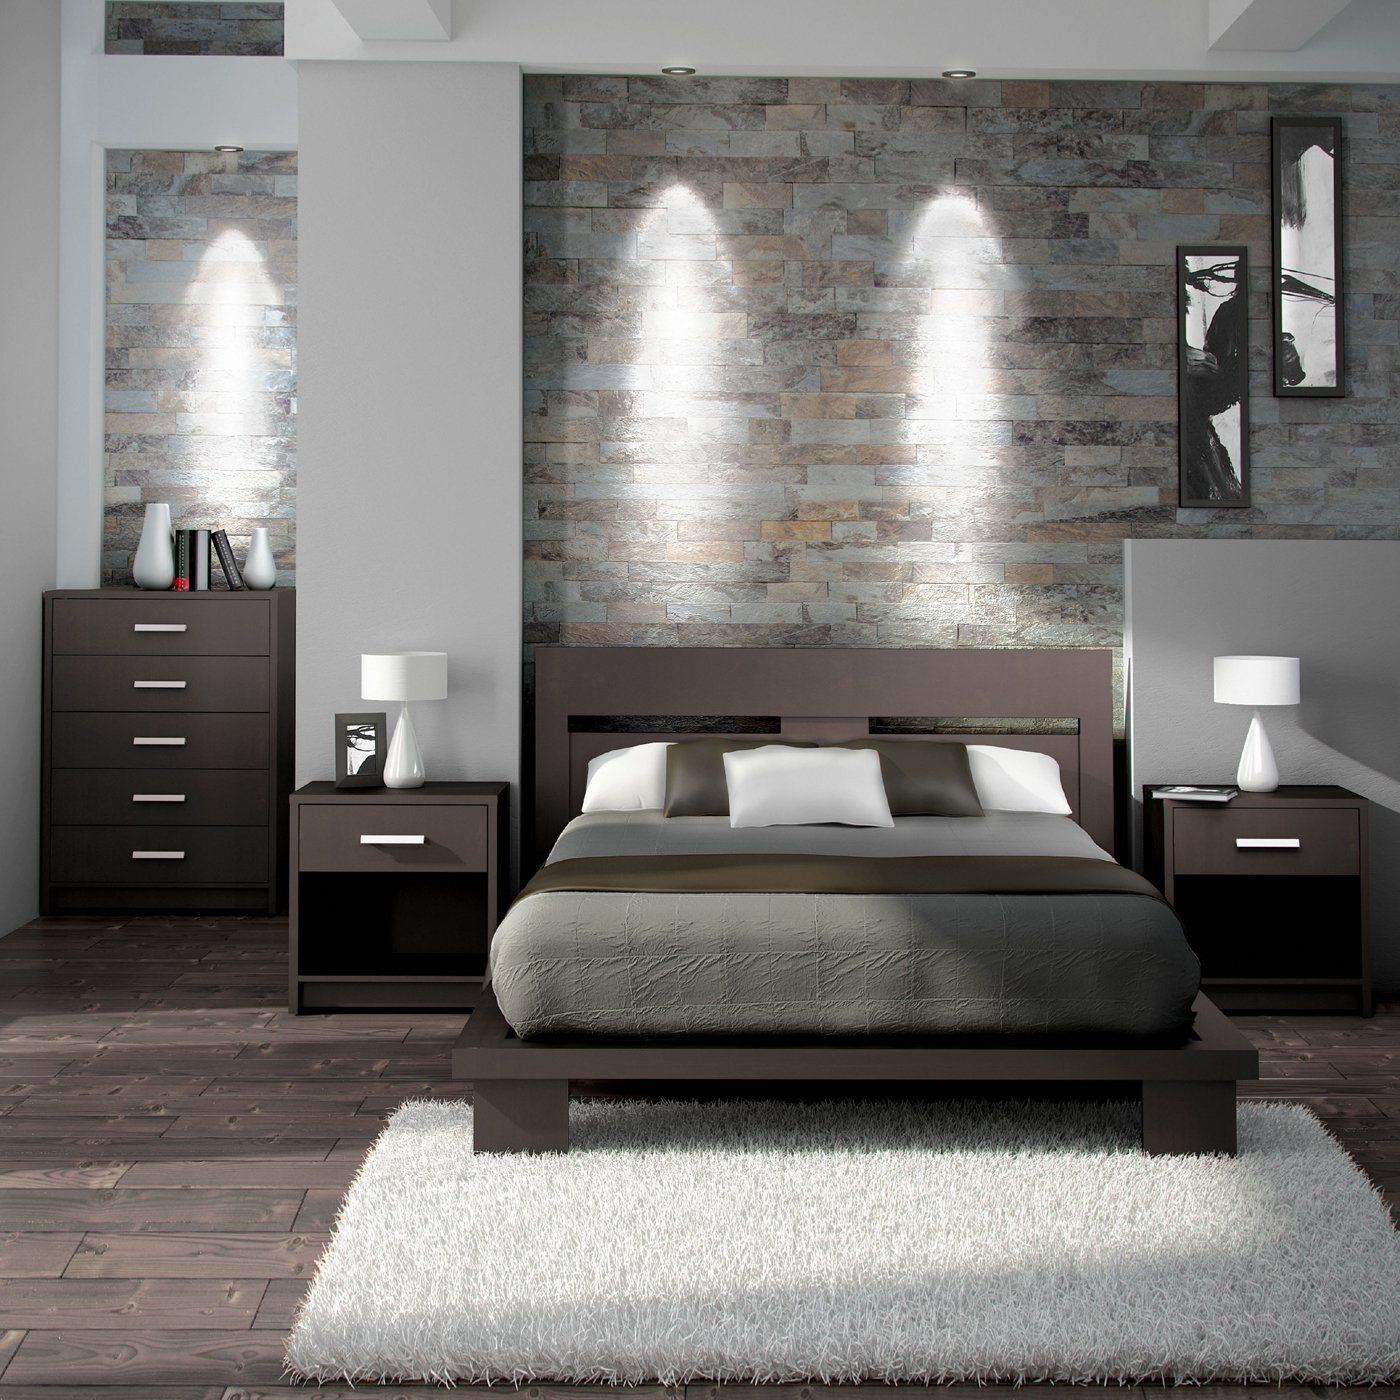 A Simple And Modern Bedroom Set In Espresso Brown. Itu0027s Made With A 100%  Recycled Cardboard.